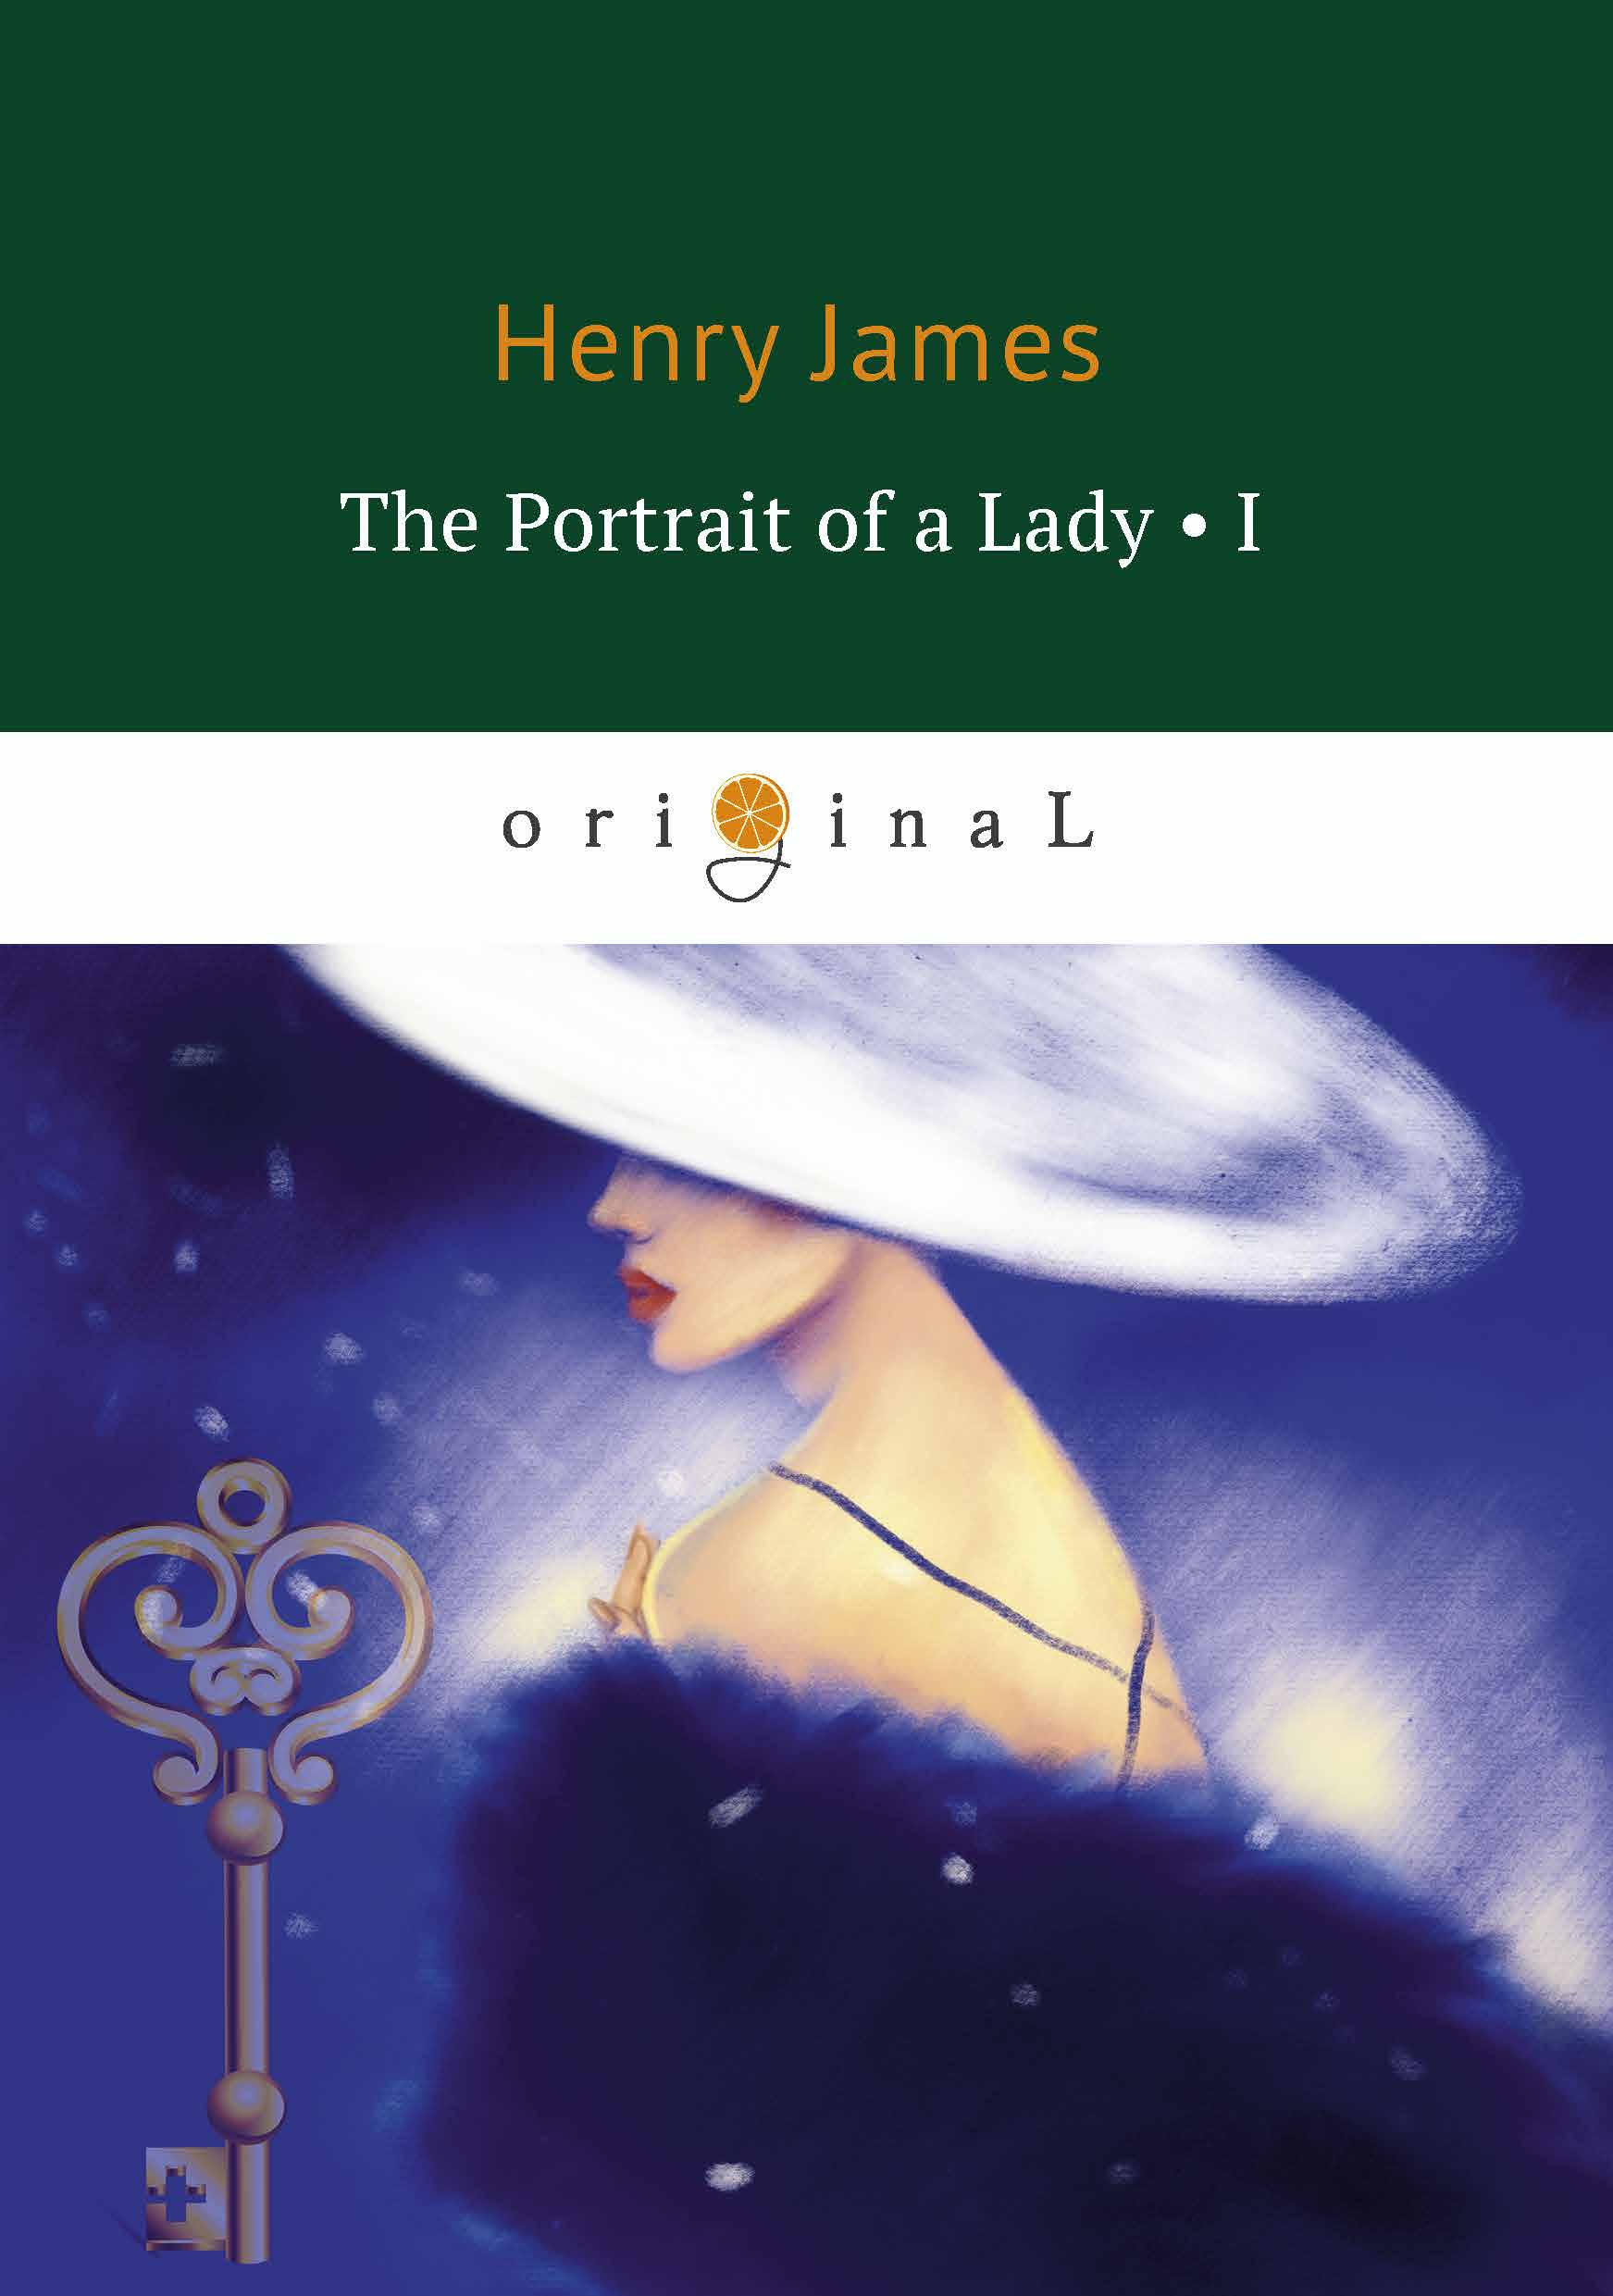 Henry James The Portrait of a Lady I the 7th victim